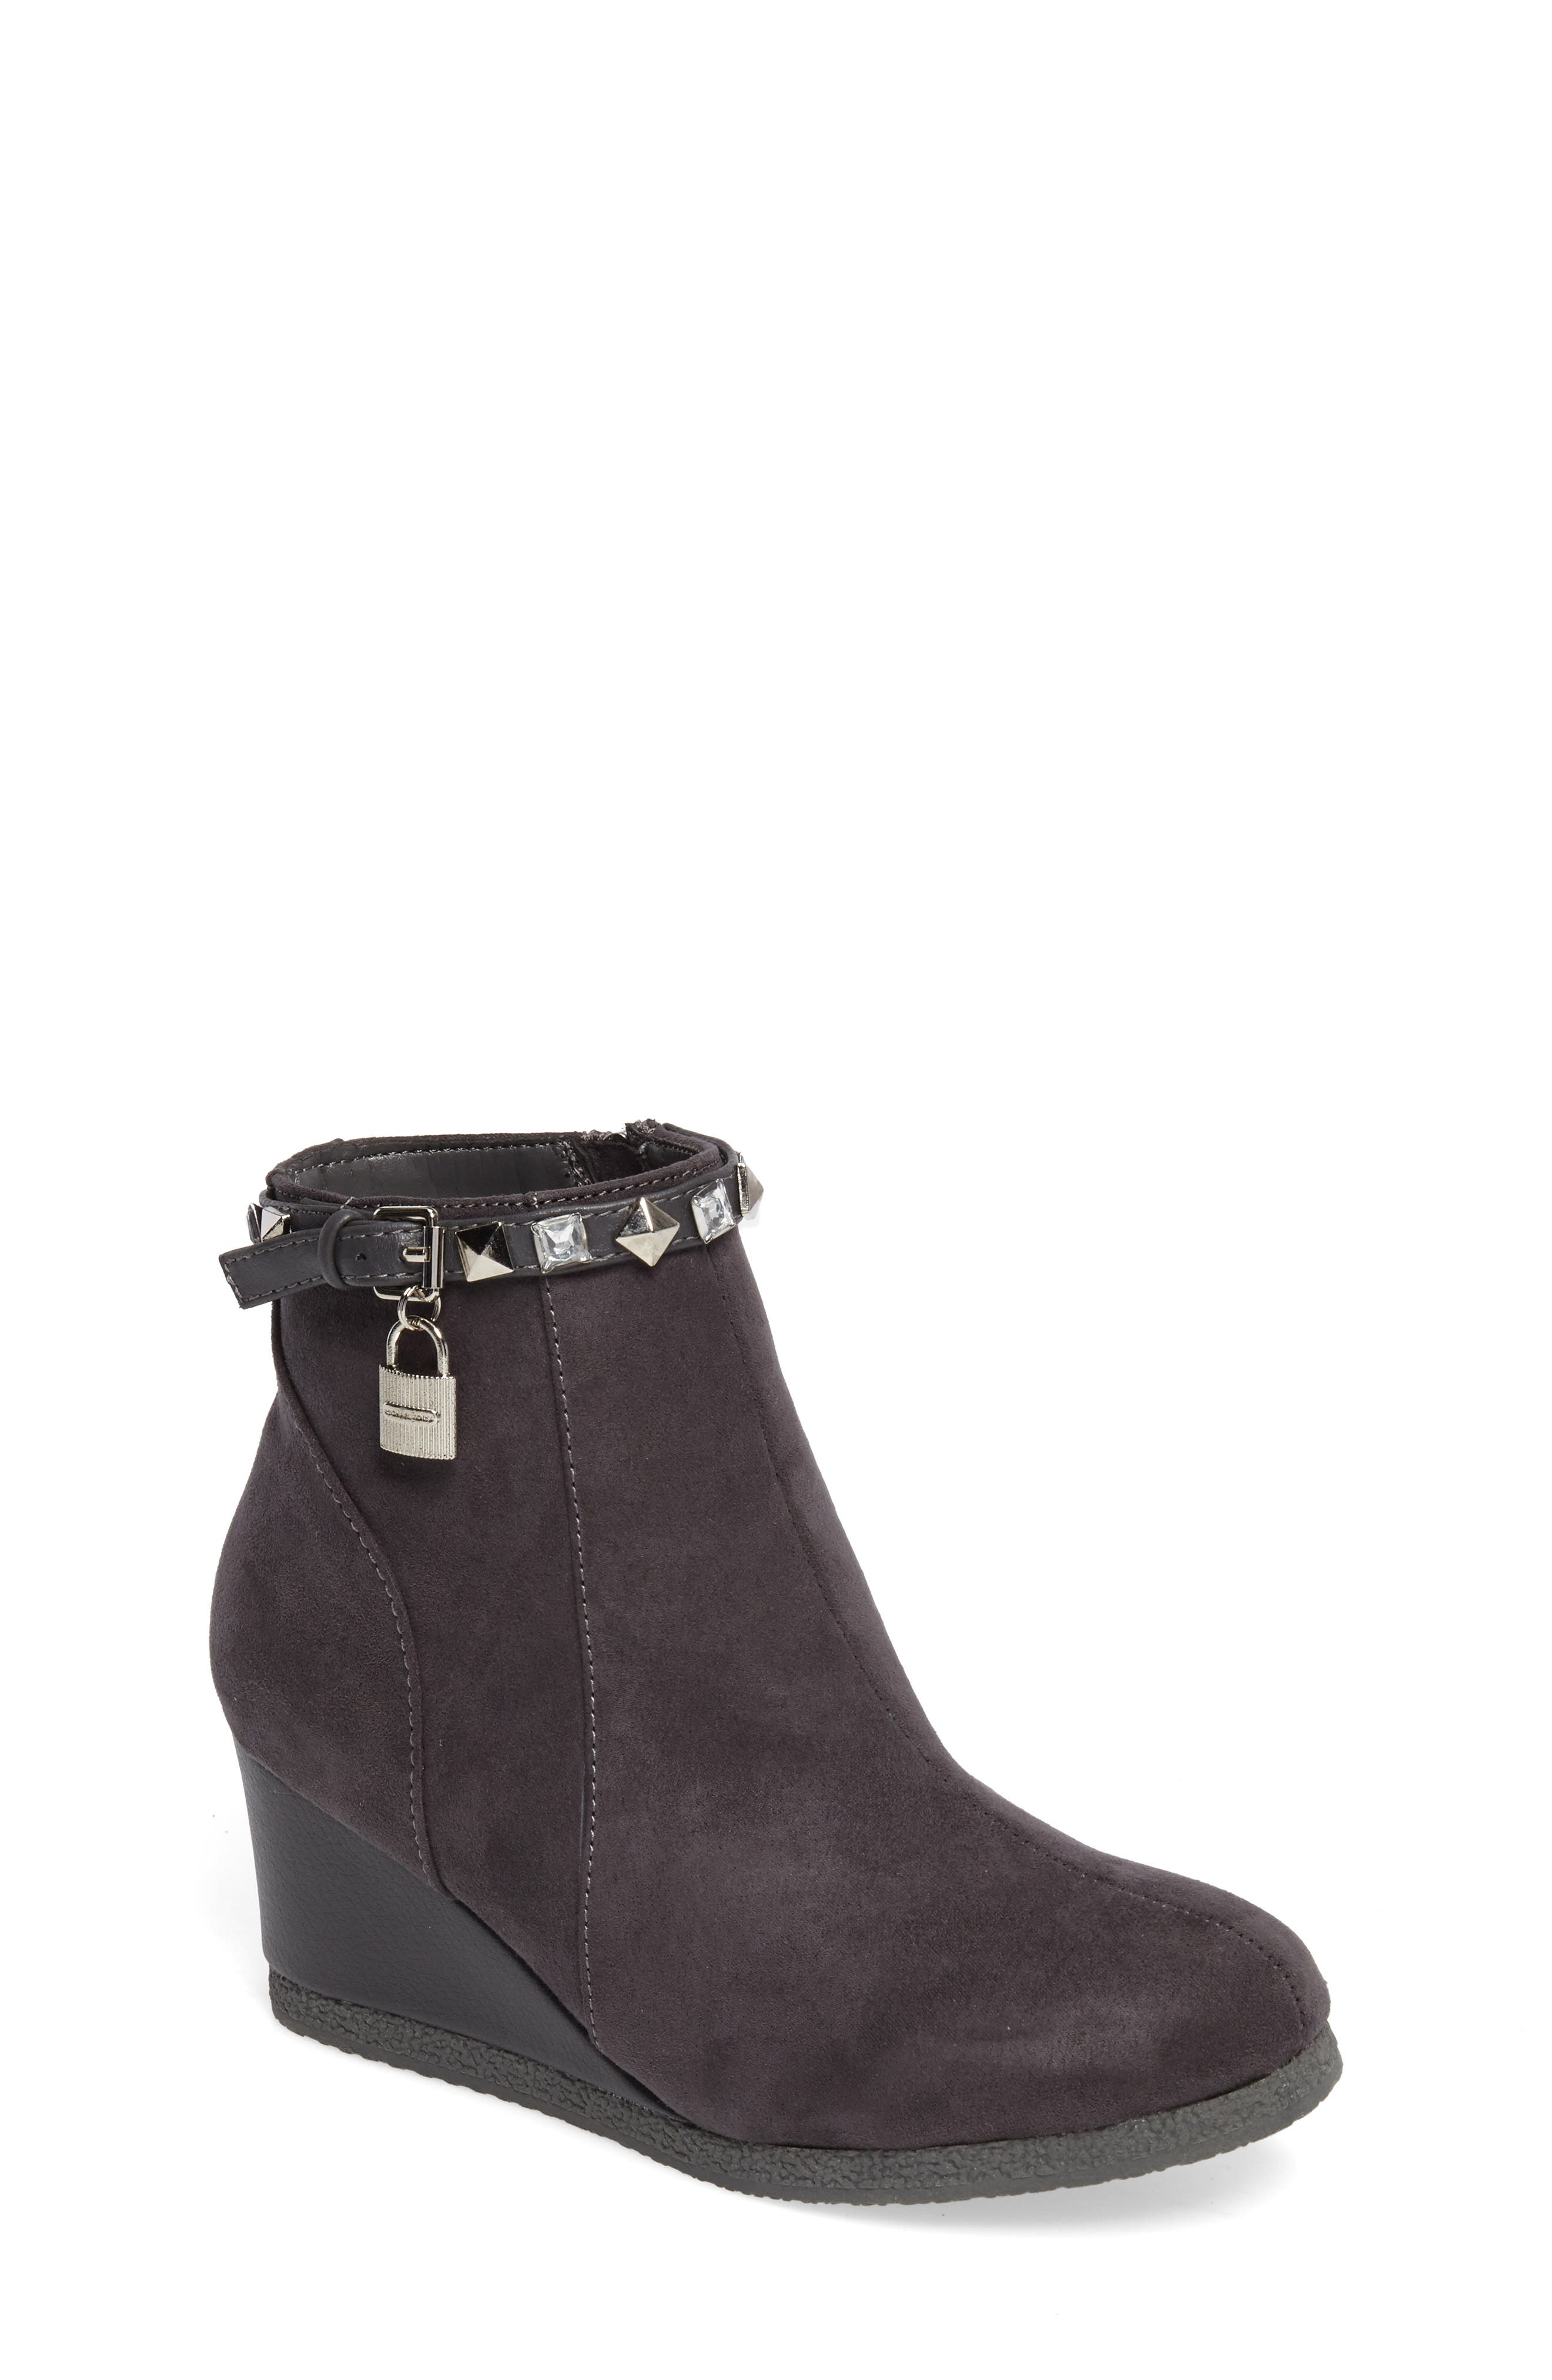 Cara Key Studded Wedge Bootie,                             Main thumbnail 2, color,